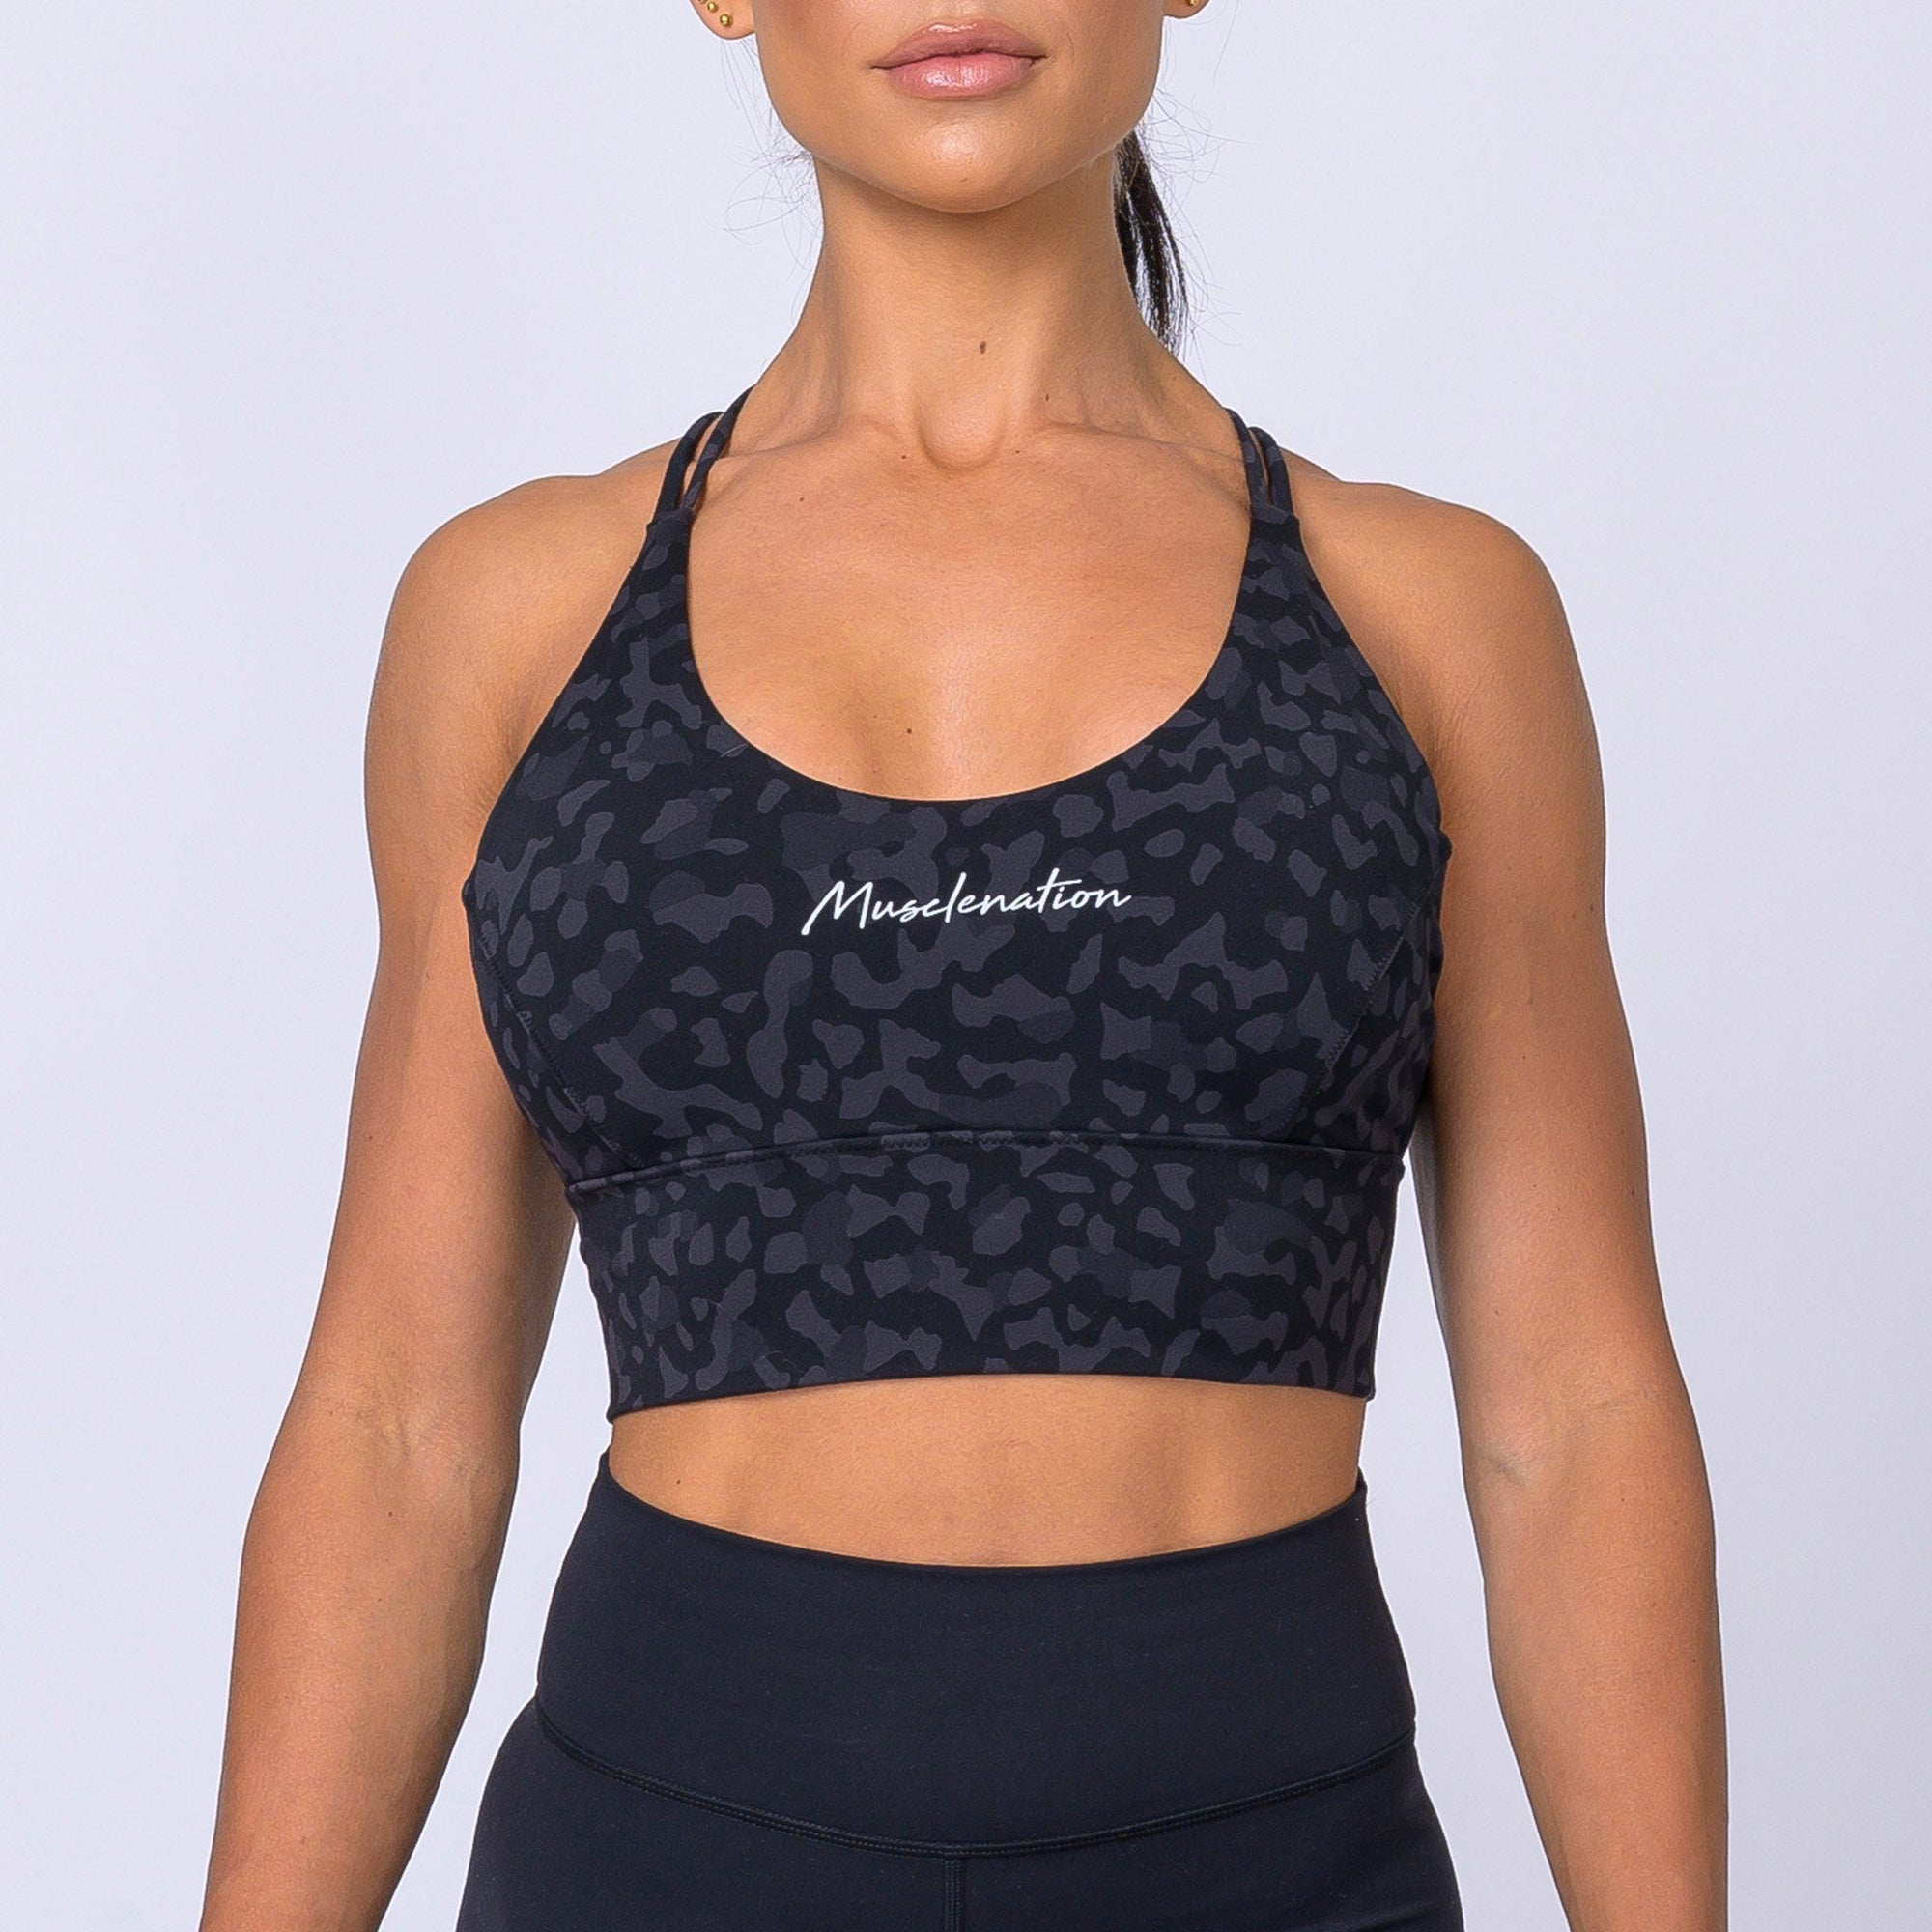 Muscle Nation Butter Motion Sports Bra – Black Grey Leopard